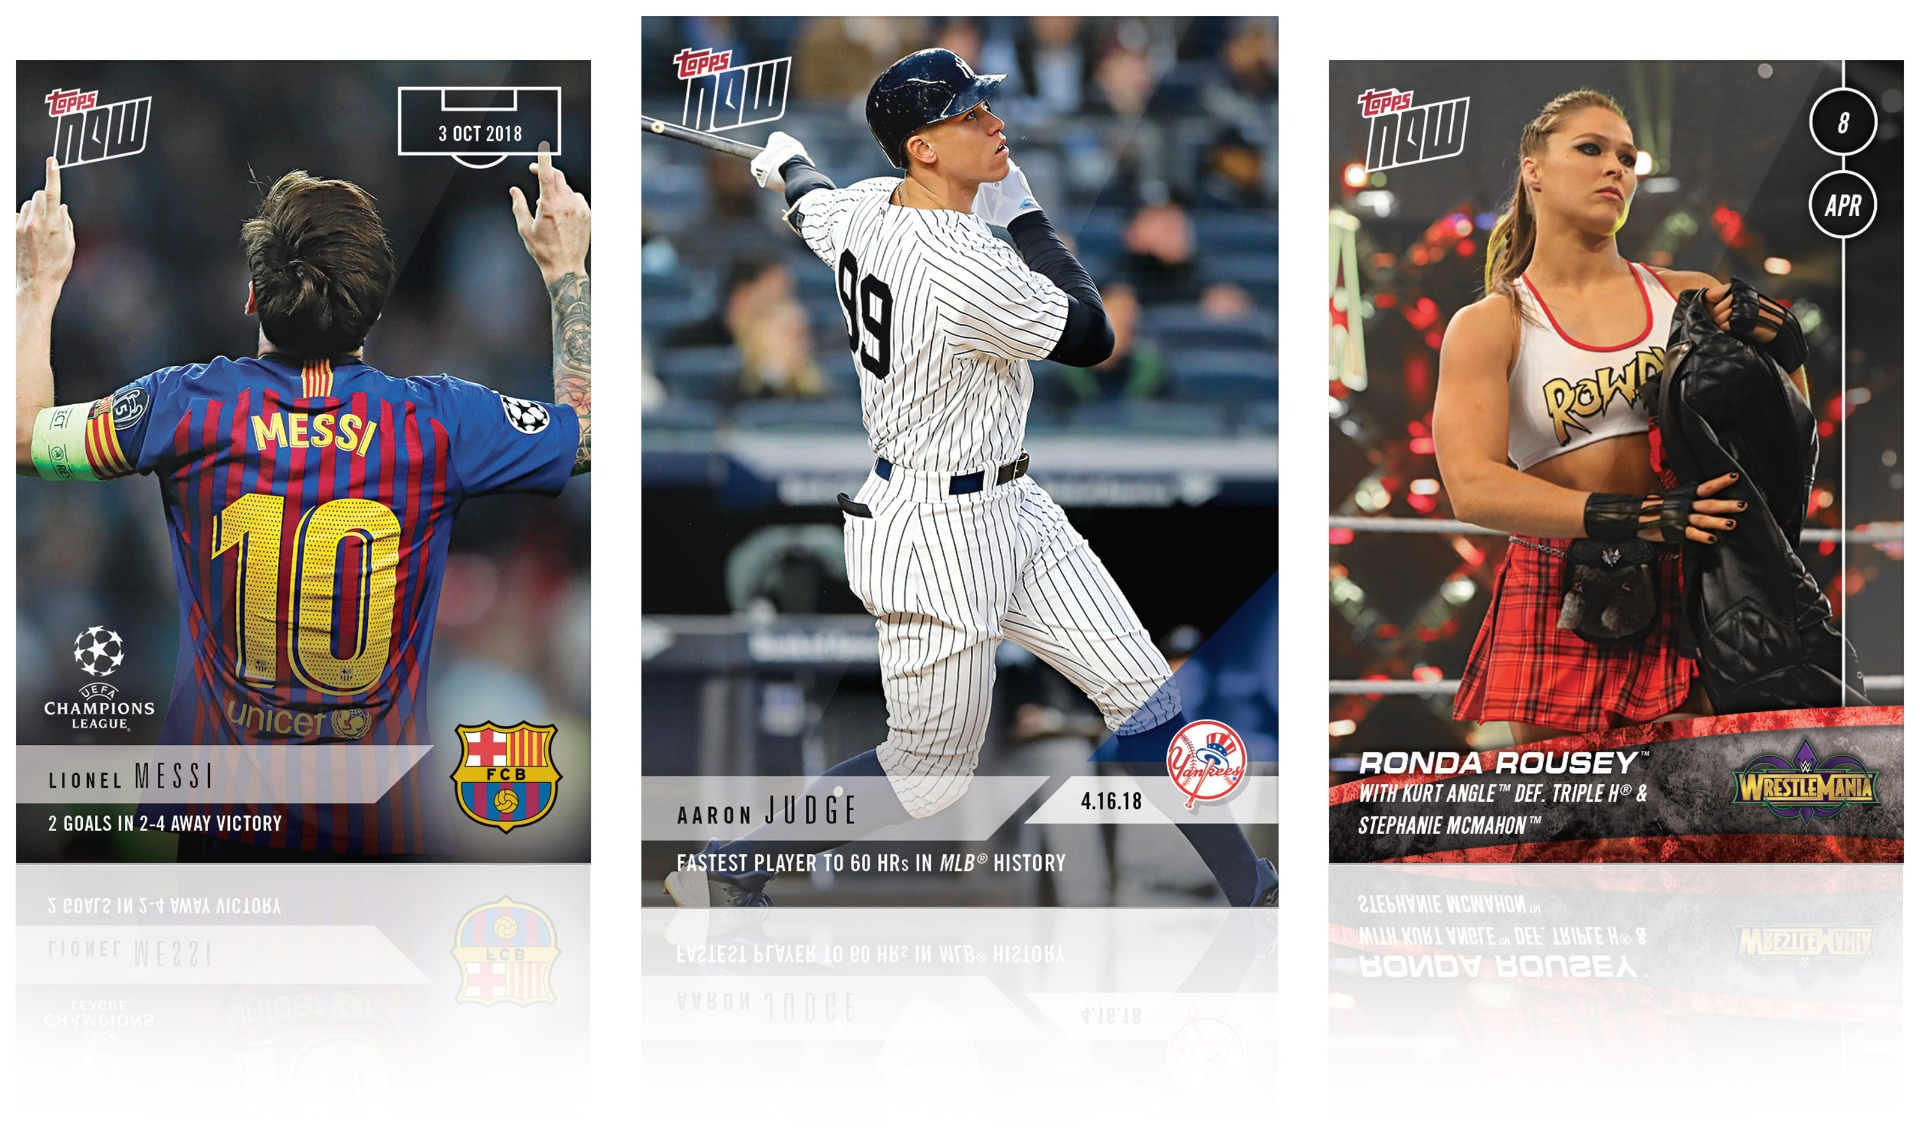 Amazon.com gift cards can be purchased in almost any amount, from $0.50 to $2,000. Topps Now